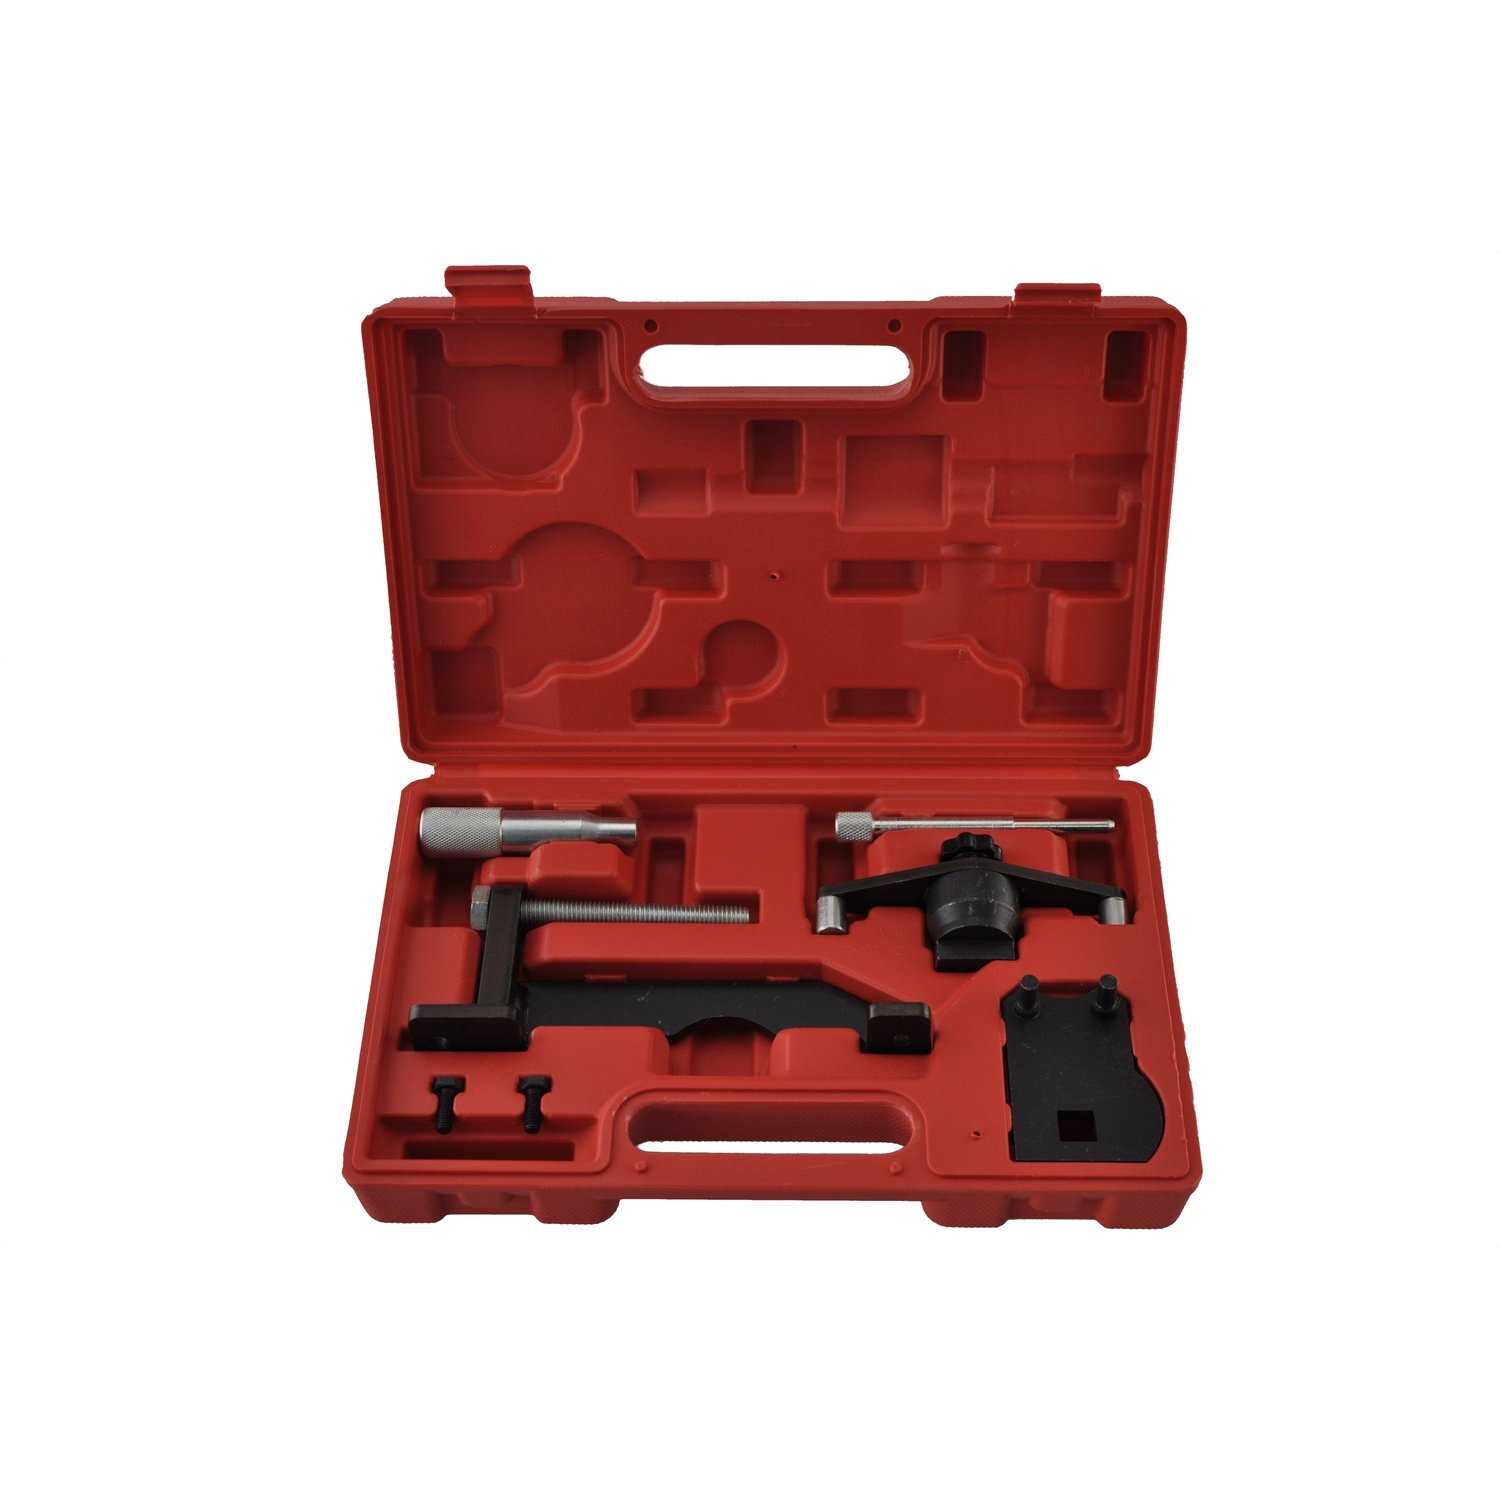 Openwork Kit Distributions Opel Suzuki Saab 2.0 2.2 Dti Di Timing Tool